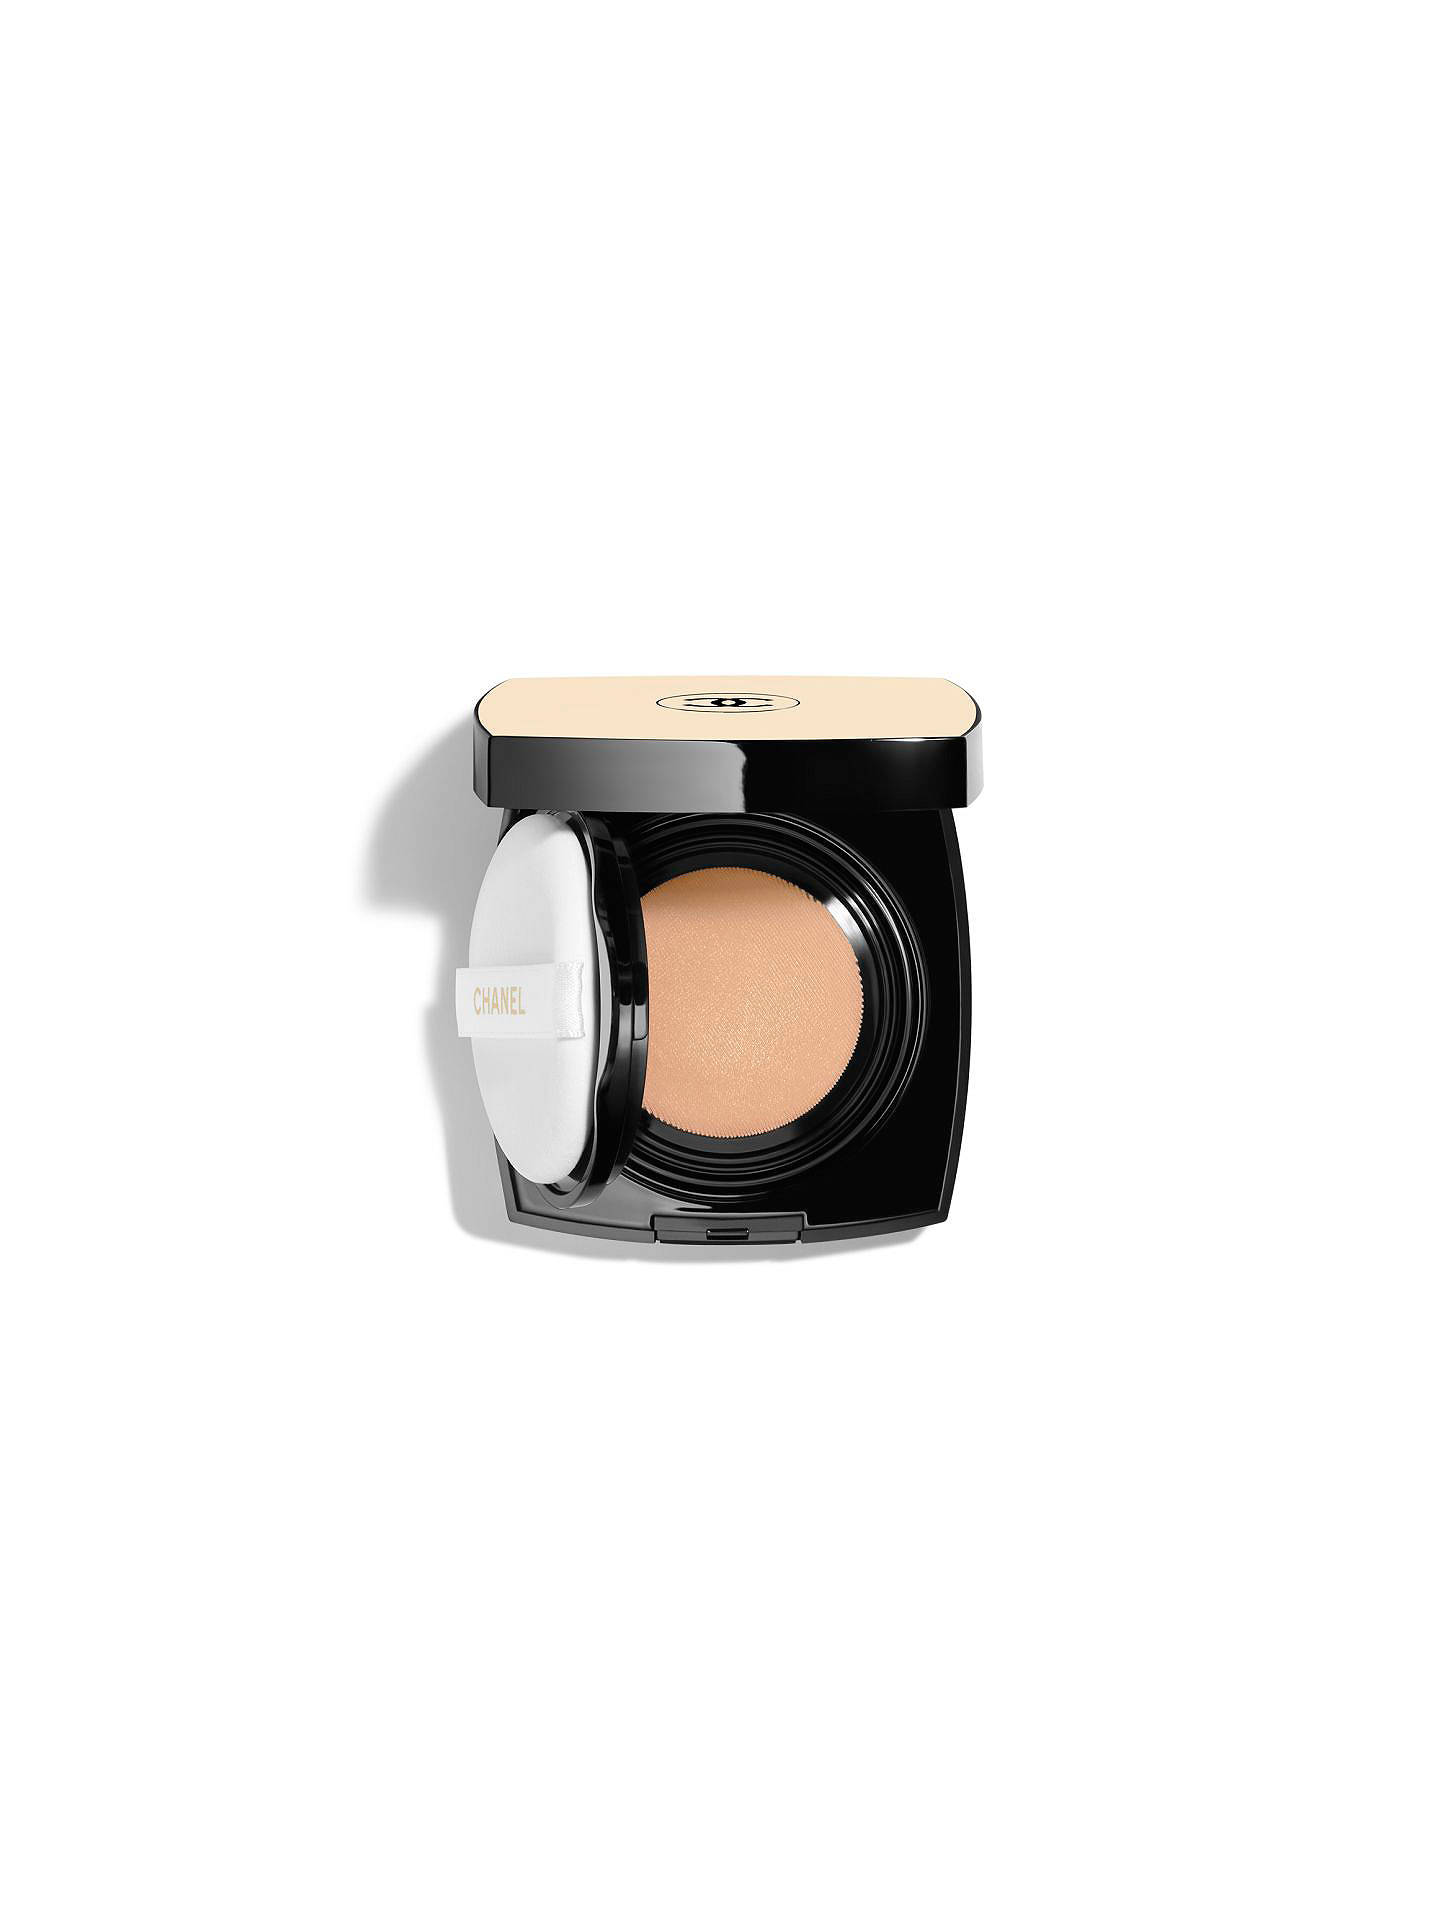 BuyCHANEL LES BEIGES  Healthy Glow Gel Touch Foundation SPF 25 / PA+++, N°50 Online at johnlewis.com